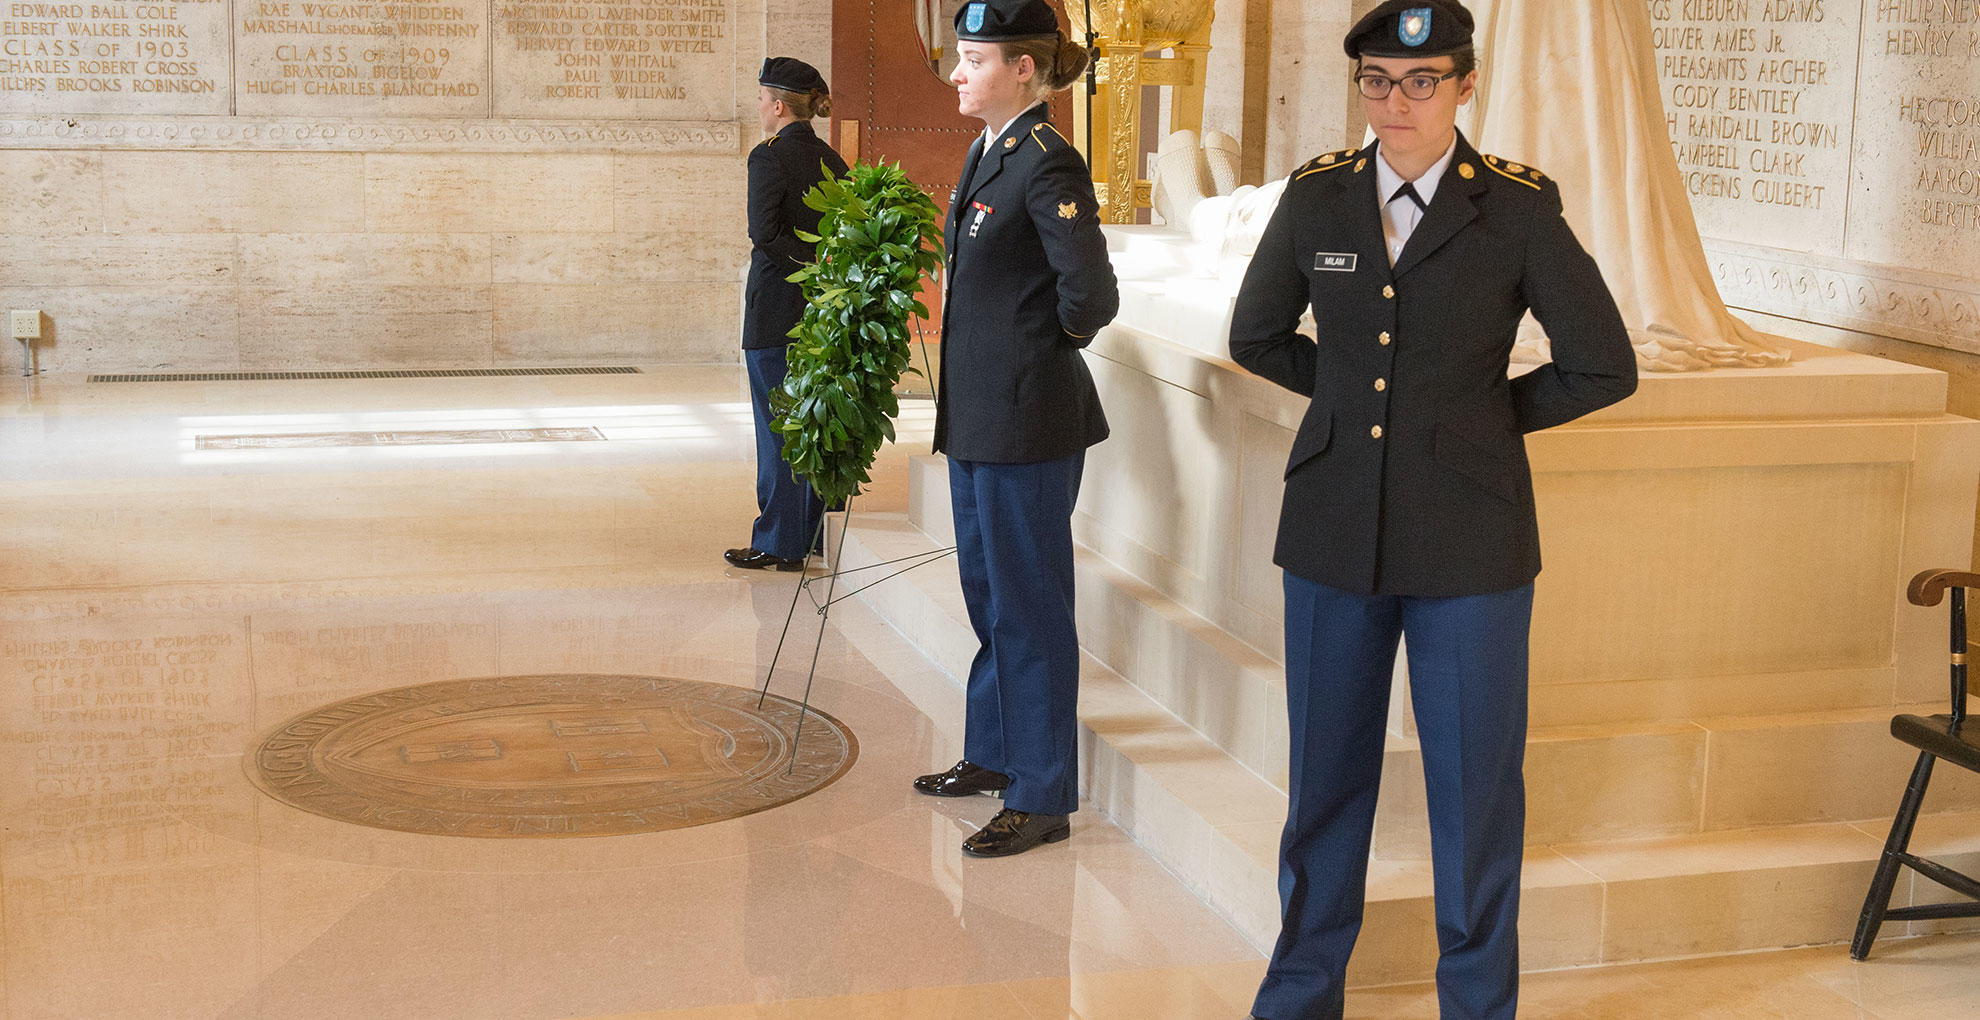 ROTC in the Memorial Room